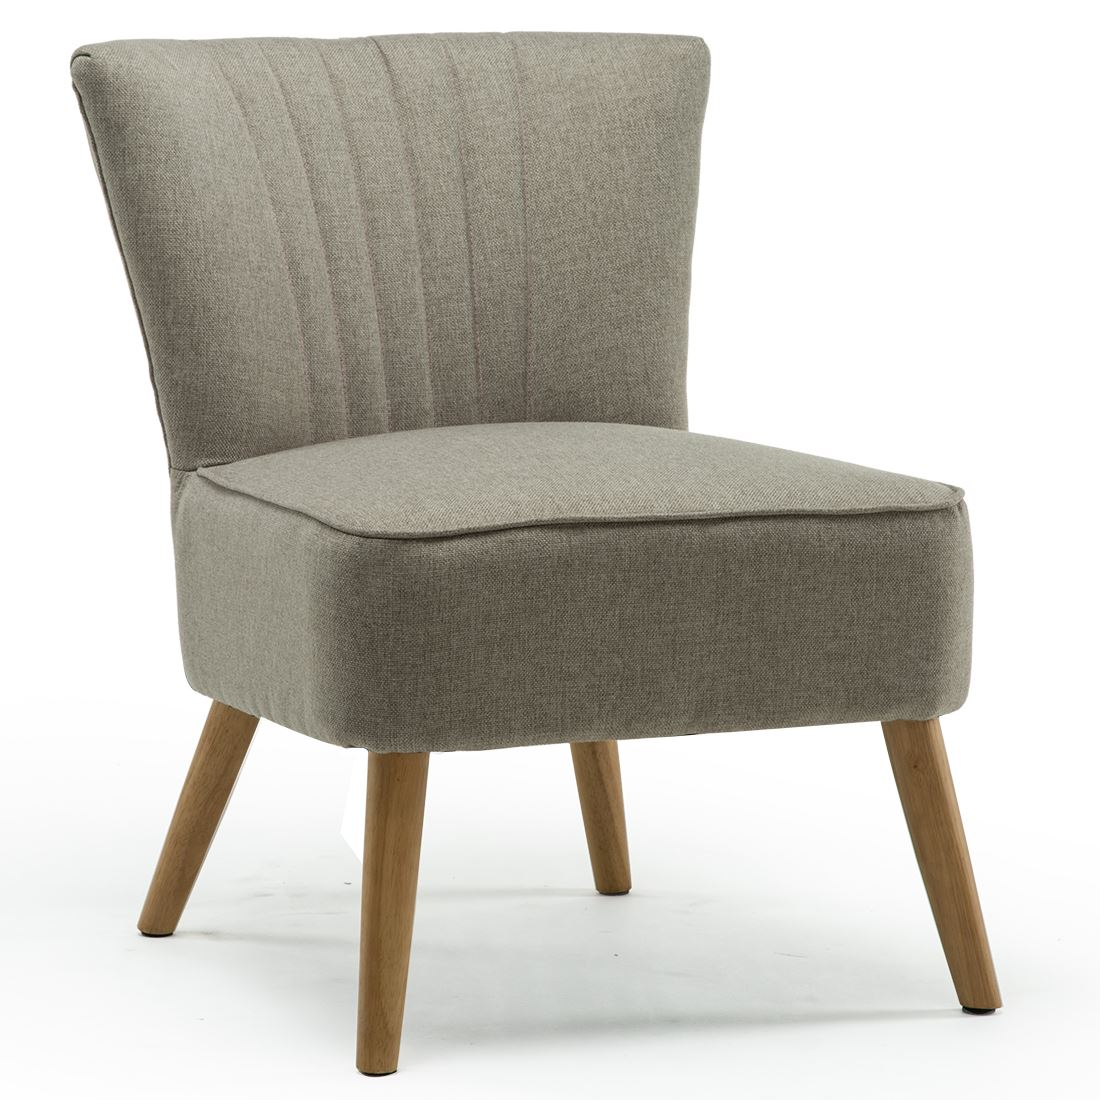 Ayla-Linen-Retro-Occasional-Hallway-Bedroom-Living-Room-Accent-Chair-Fabric-Tub